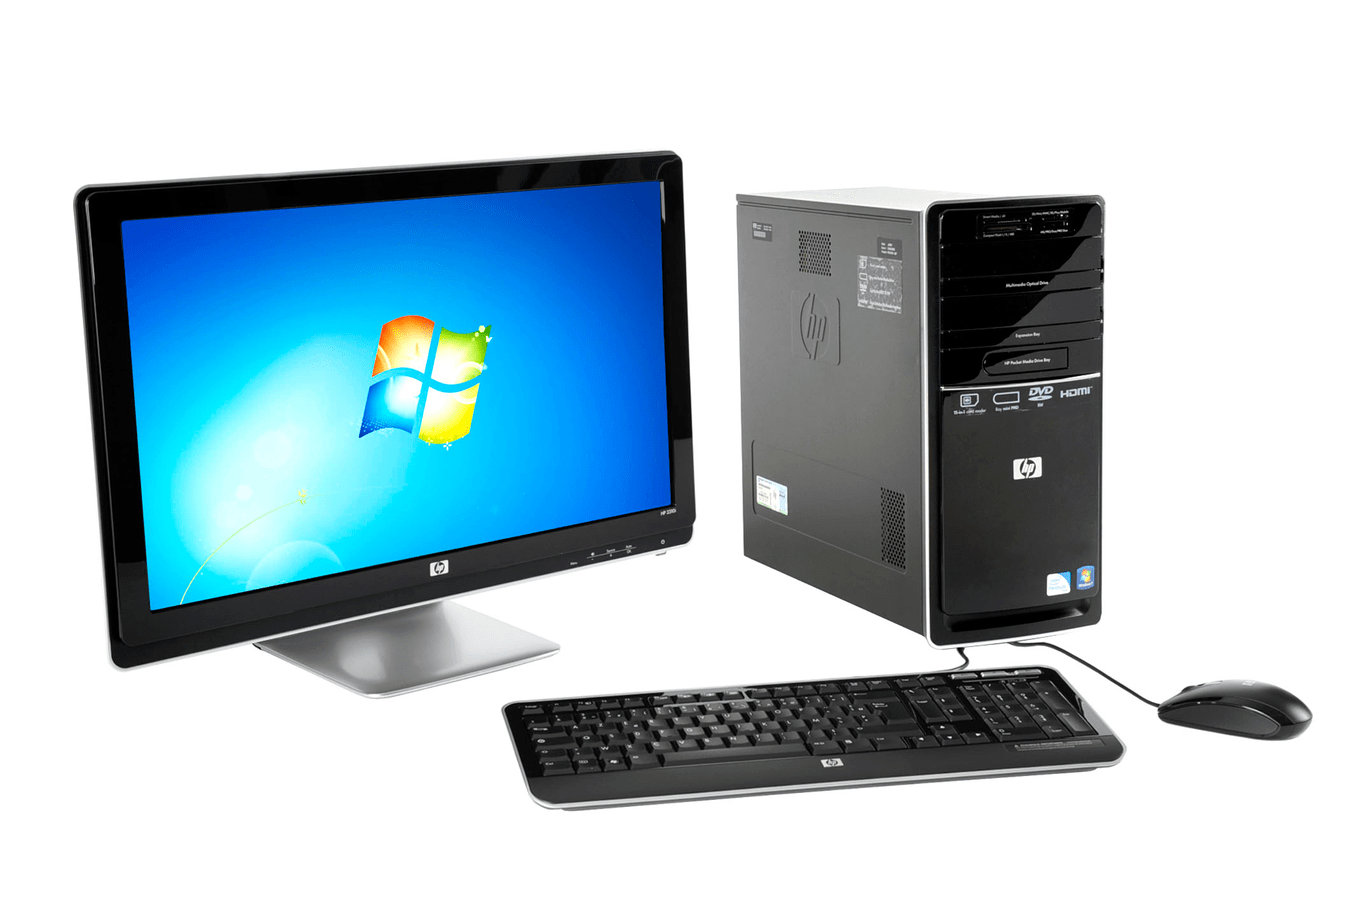 PC De Bureau Hp P6356FR 23 P6356FR 3190021 Darty